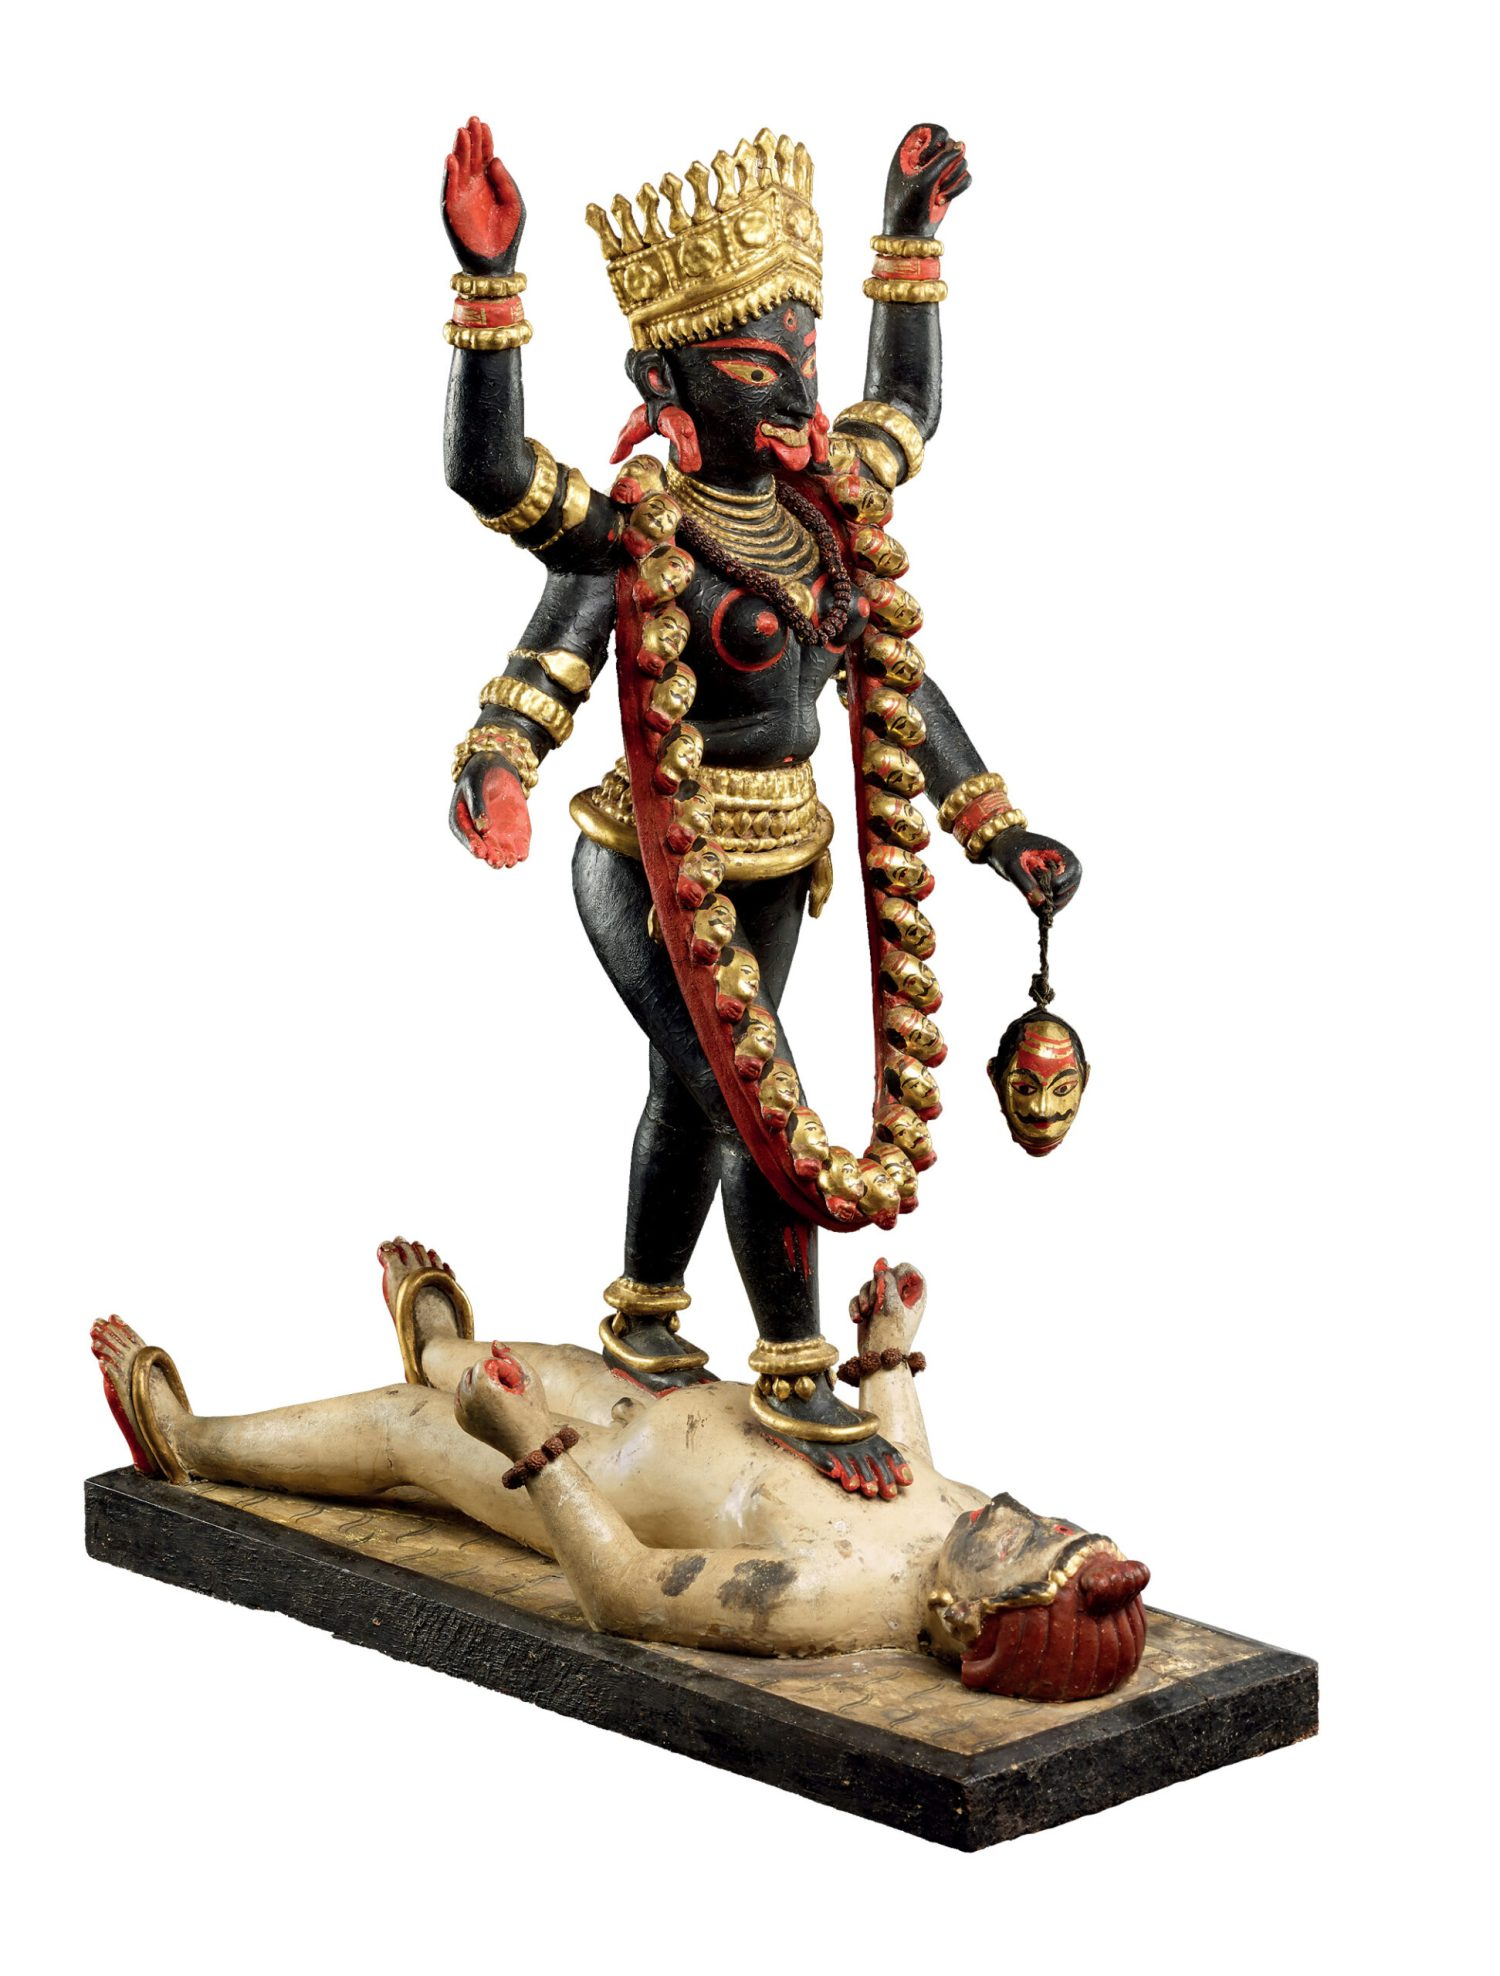 ABOVE A popular print of the goddess Kali, advertising cigarettes, published by the Calcutta Art Studio, c.1885-1895. Lithograph. Size: 42 x 32.1cm RIGHT Figure of the goddess Kali striding over Shiva, probably made in Krishnanagar, Bengal, 1890s. Painted and gilded clay. Size: 53 x